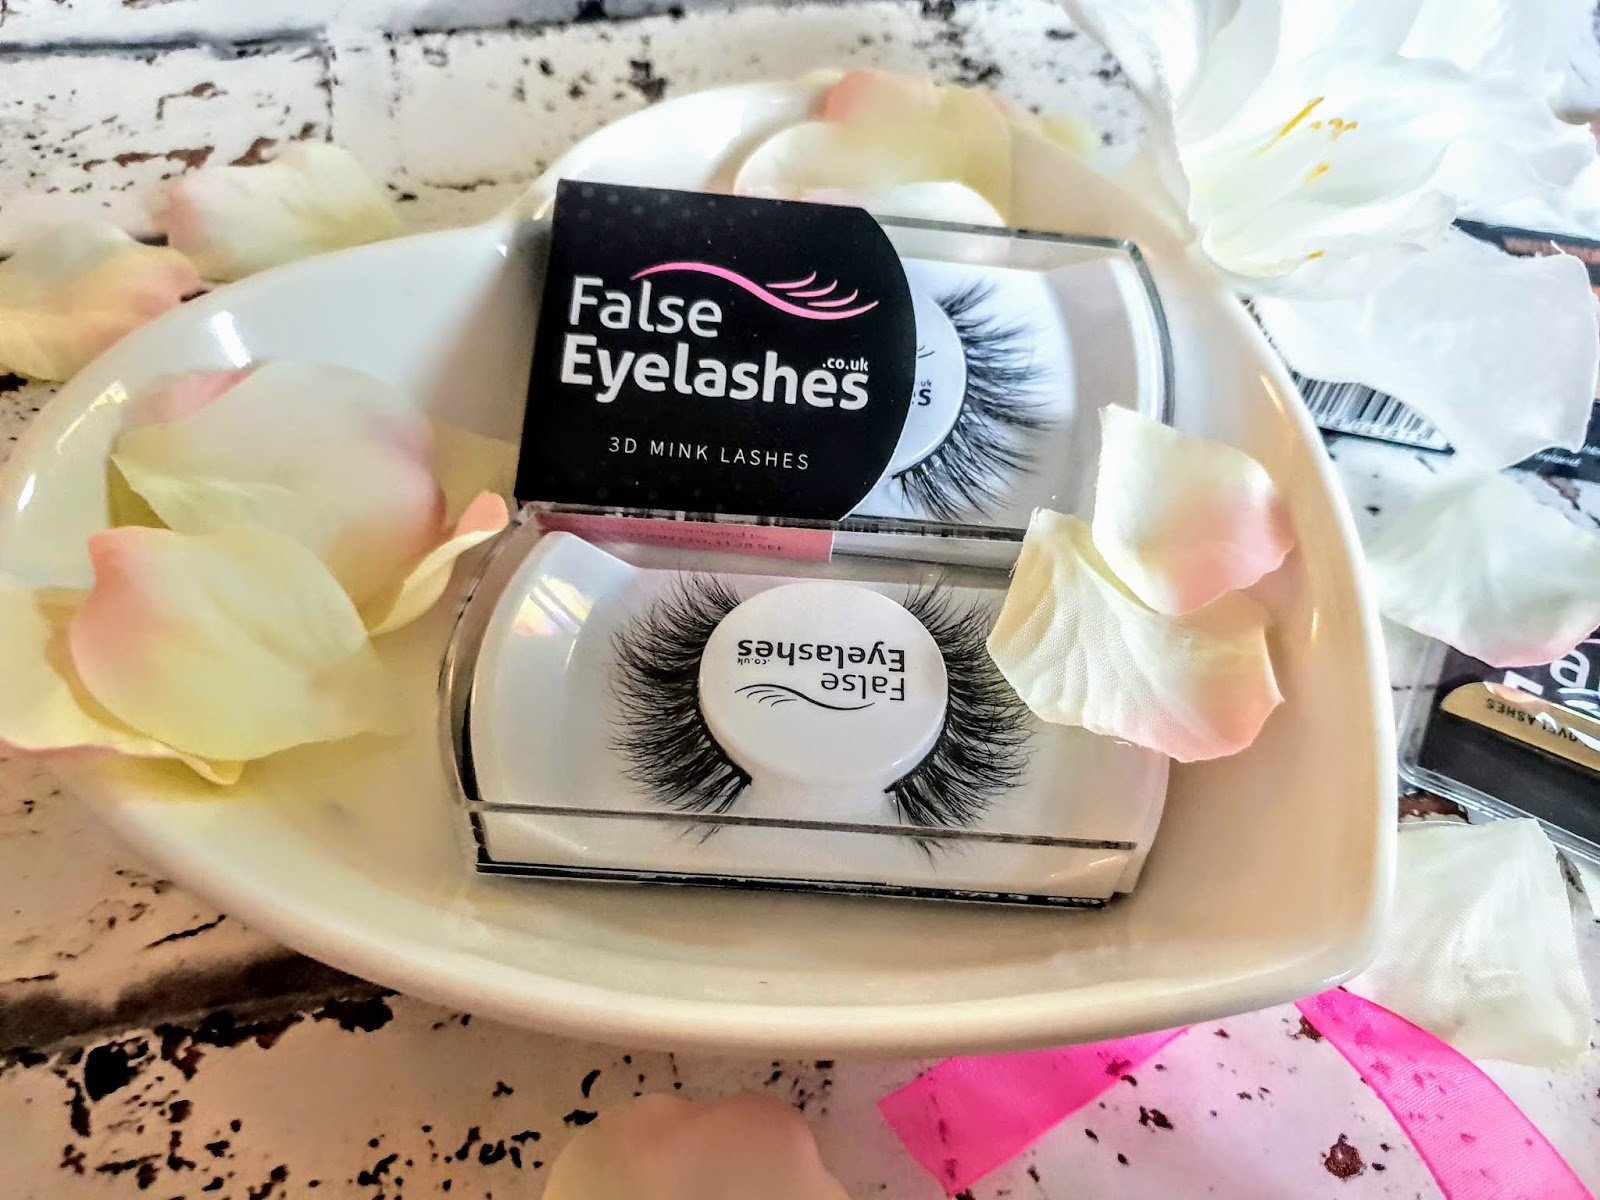 FalseEyelashes.co.uk 3D Mink Lashes | Review